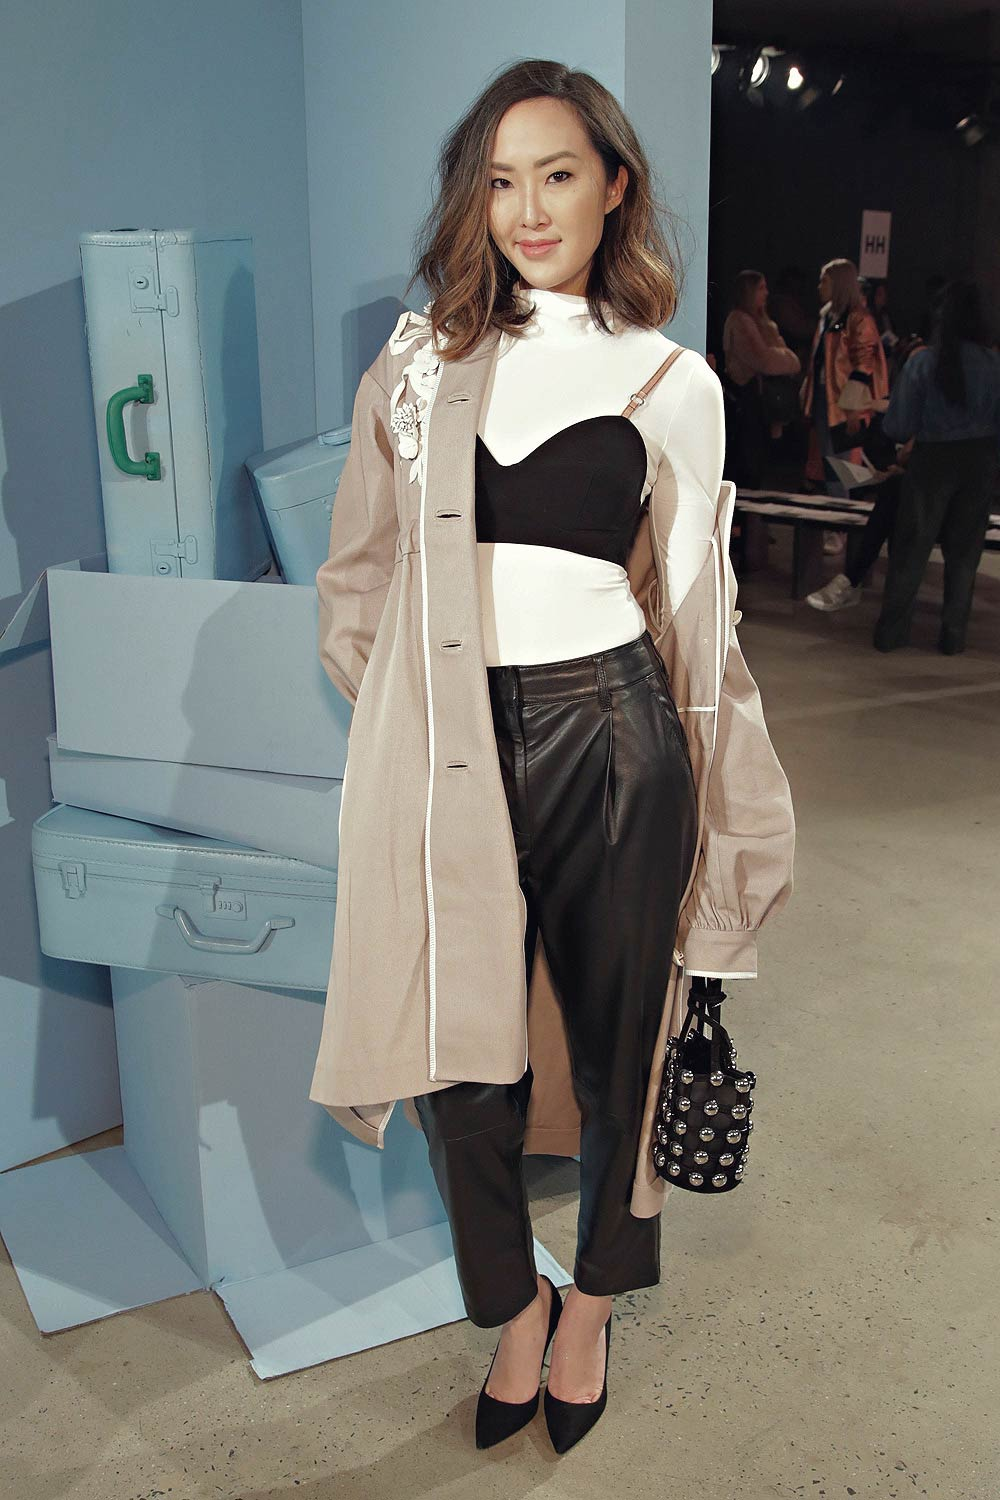 Chriselle Lim attends the Tibi fashion show